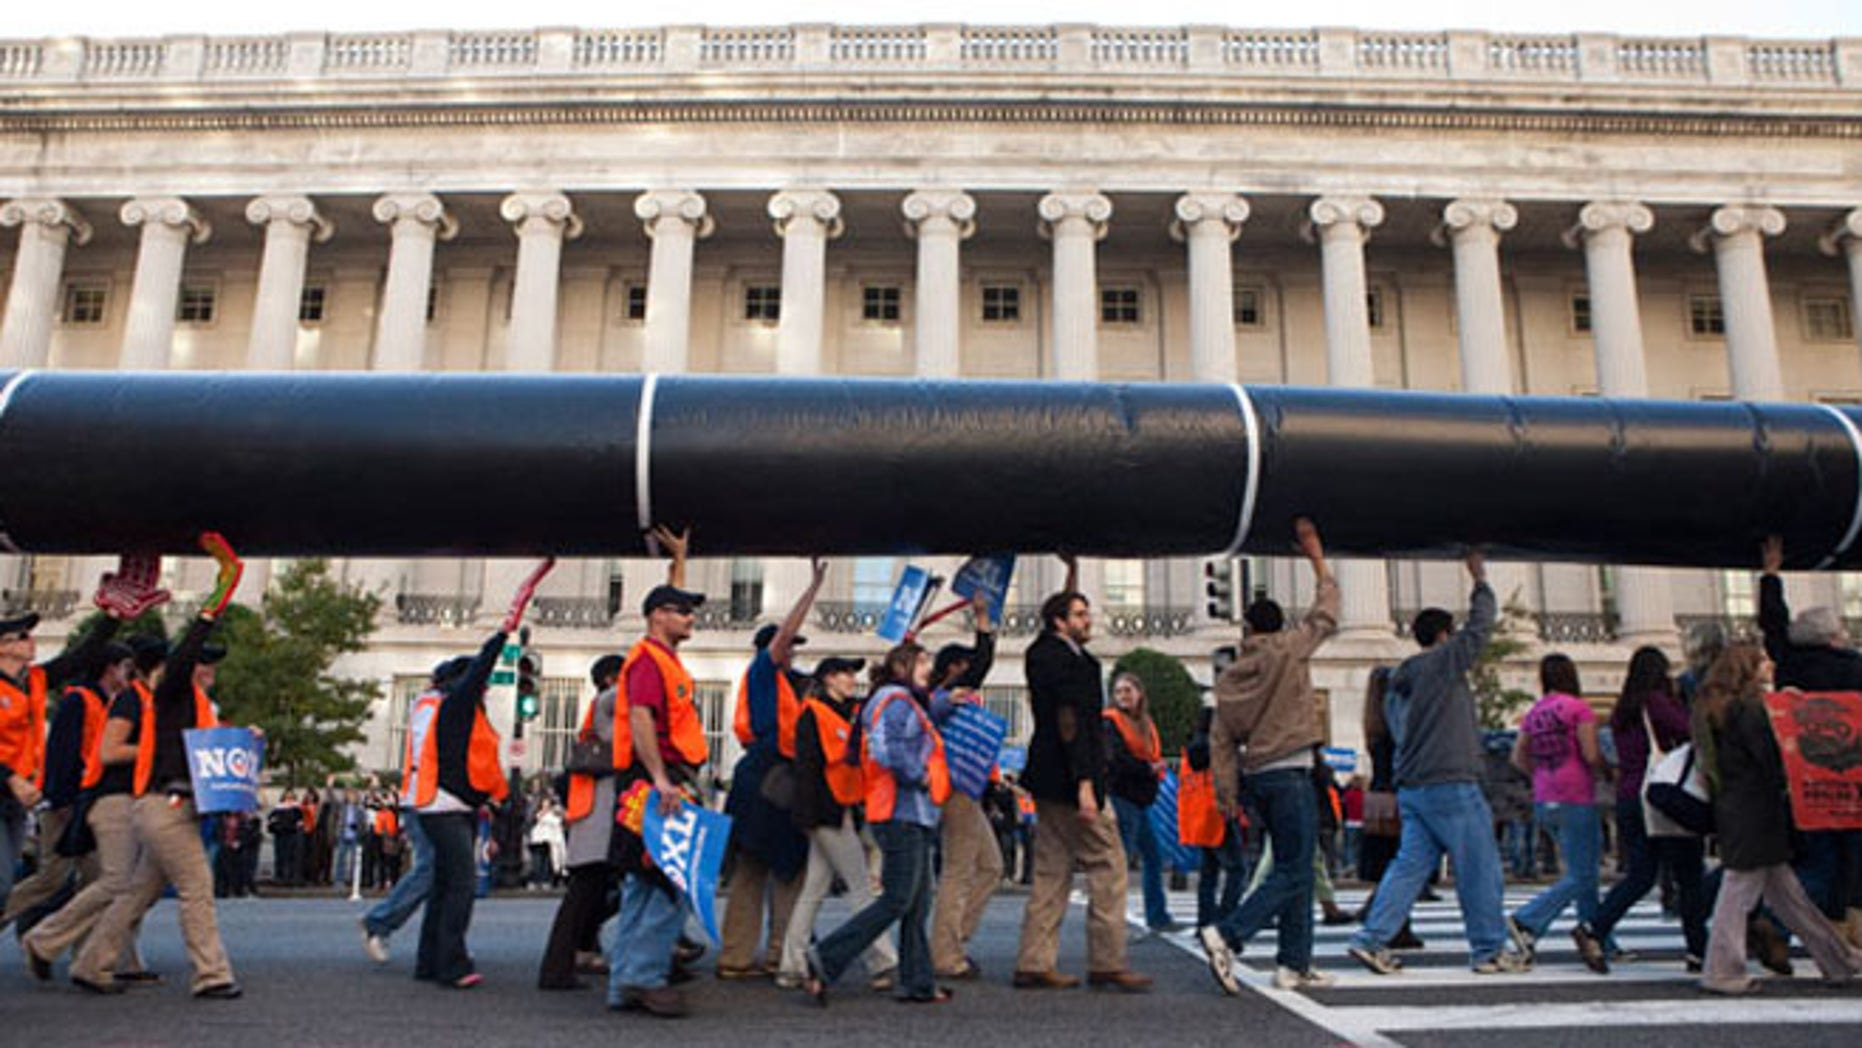 Nov. 6, 2011: Demonstrators carry a mock pipeline during an anti-Keystone rally in front of the White House in Washington.